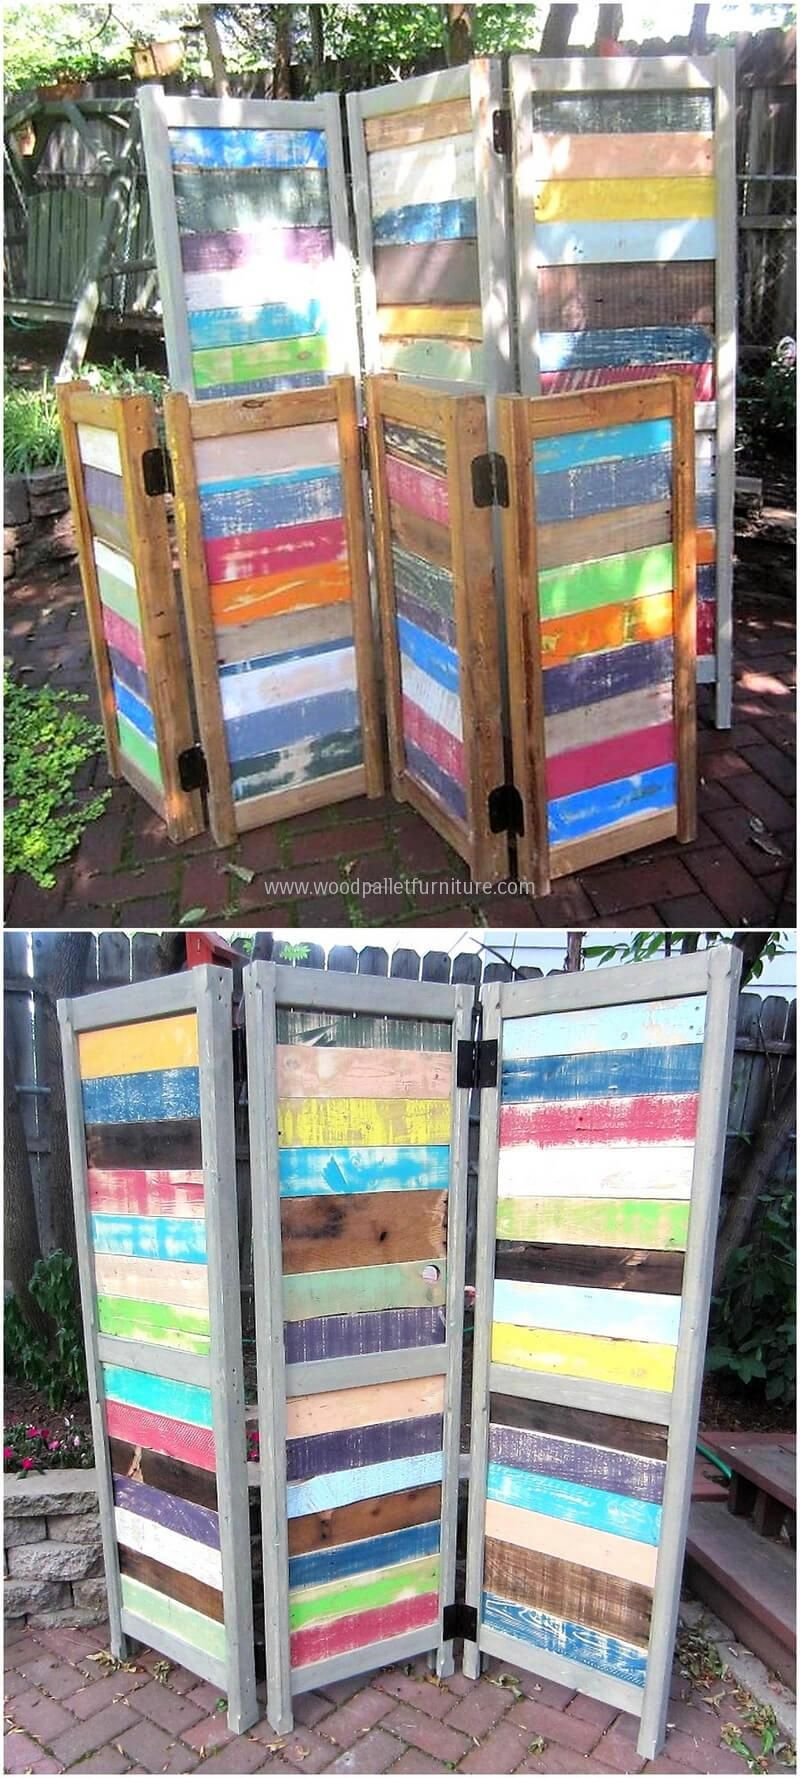 Wooden pallet crafting ideas by wood crafts by dave space dividers